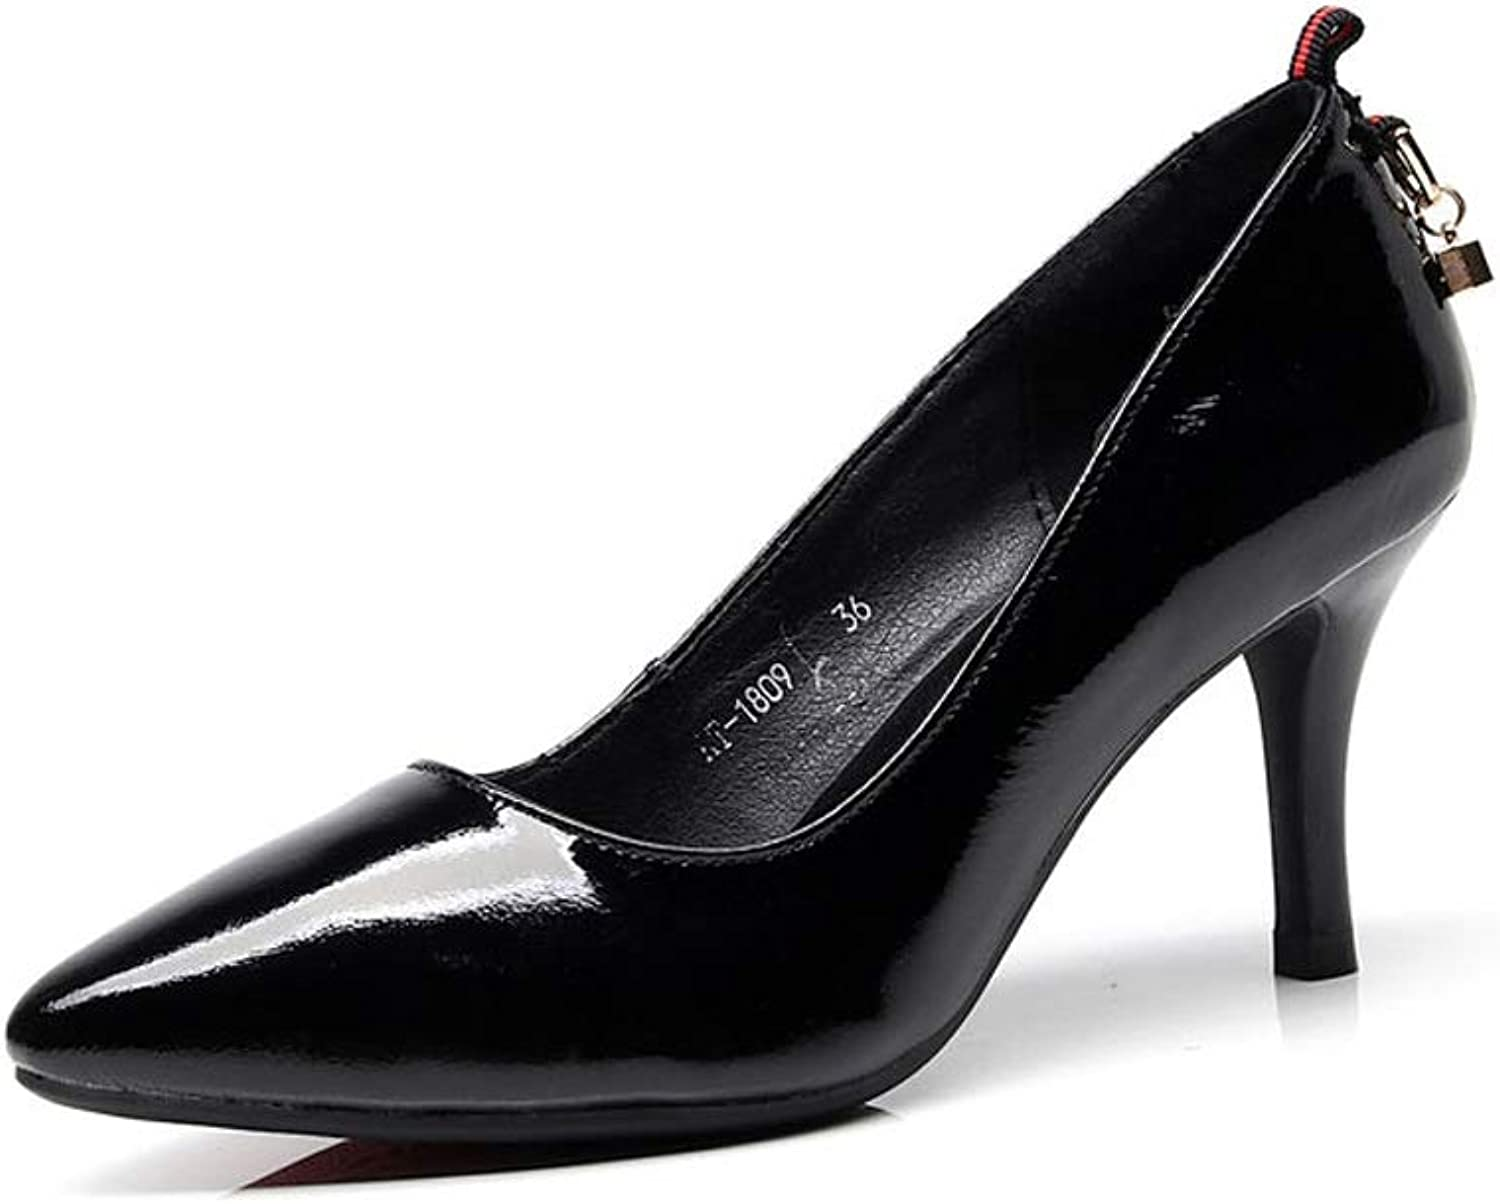 TARSHIN Single shoes High Heels Spring Stiletto Pointed Work shoes Professional shoes